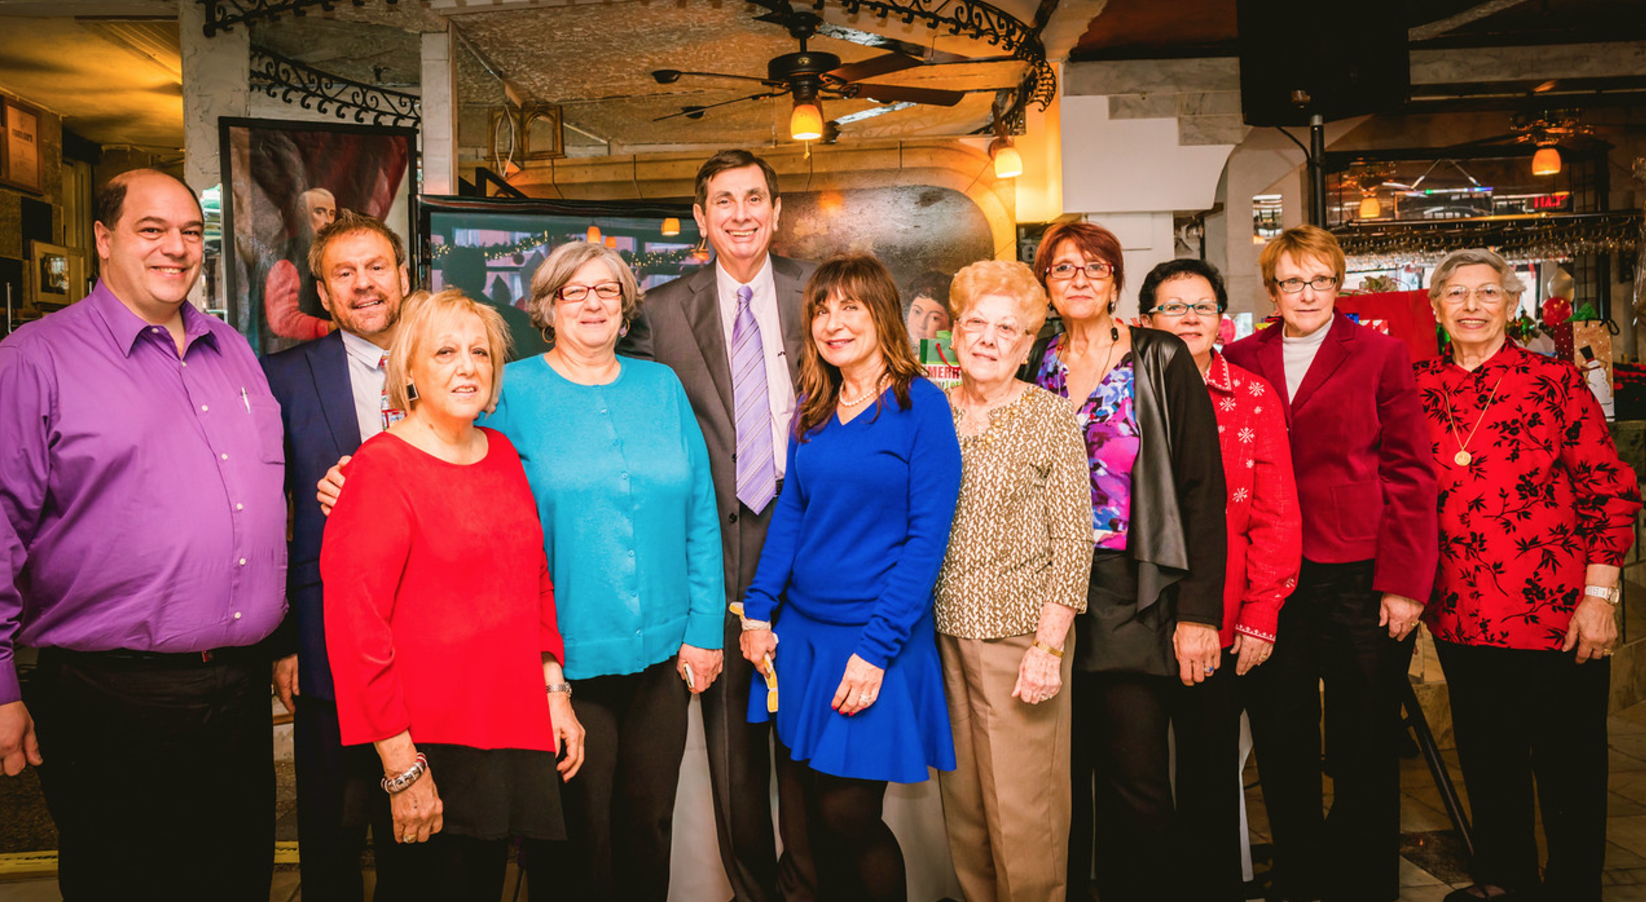 Organizing committee of the North End Christmas Fund Luncheon - 2015.  (NEWF Photo)